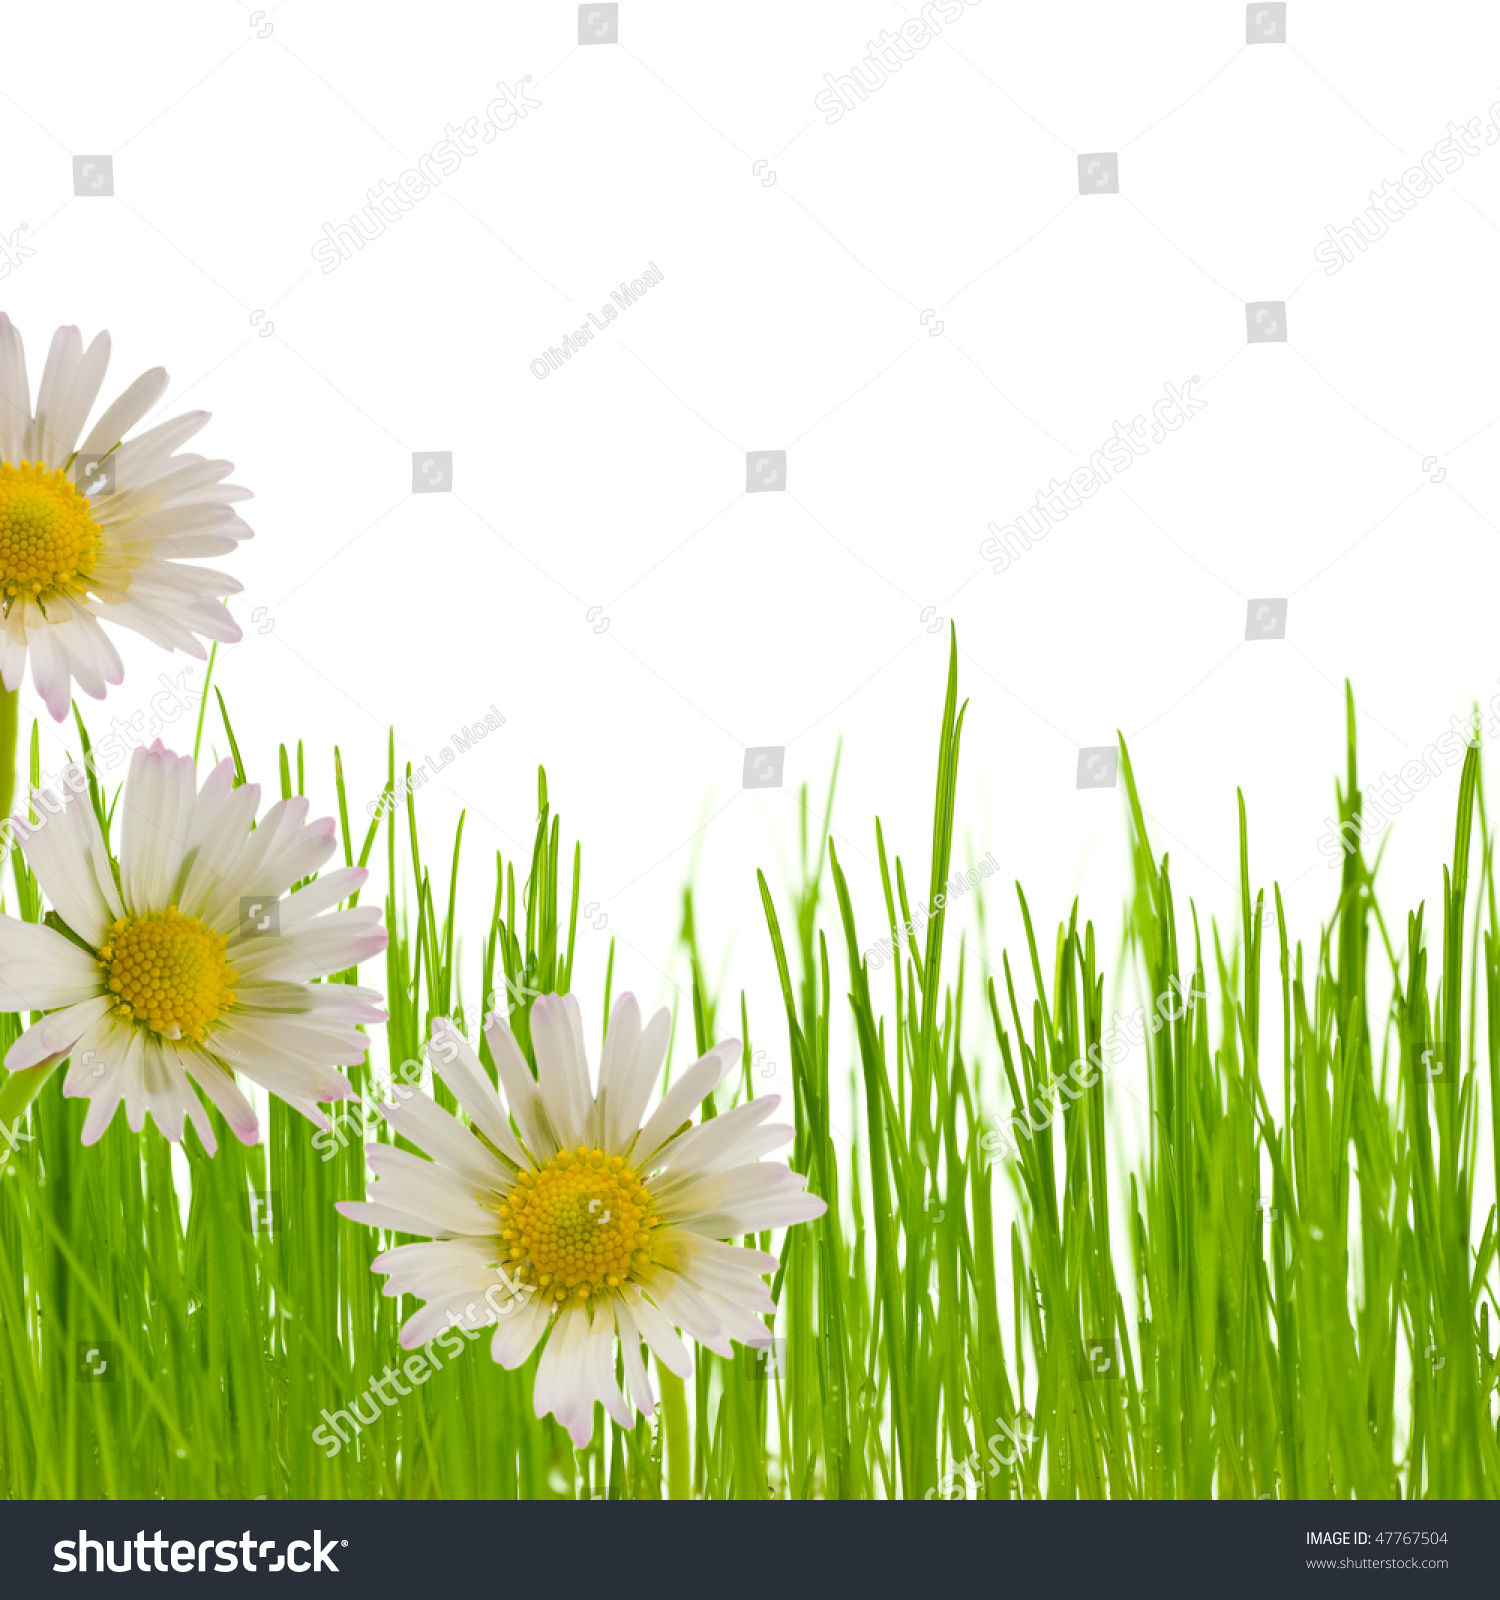 Royalty Free Three White And Yellow Flowers And A 47767504 Stock